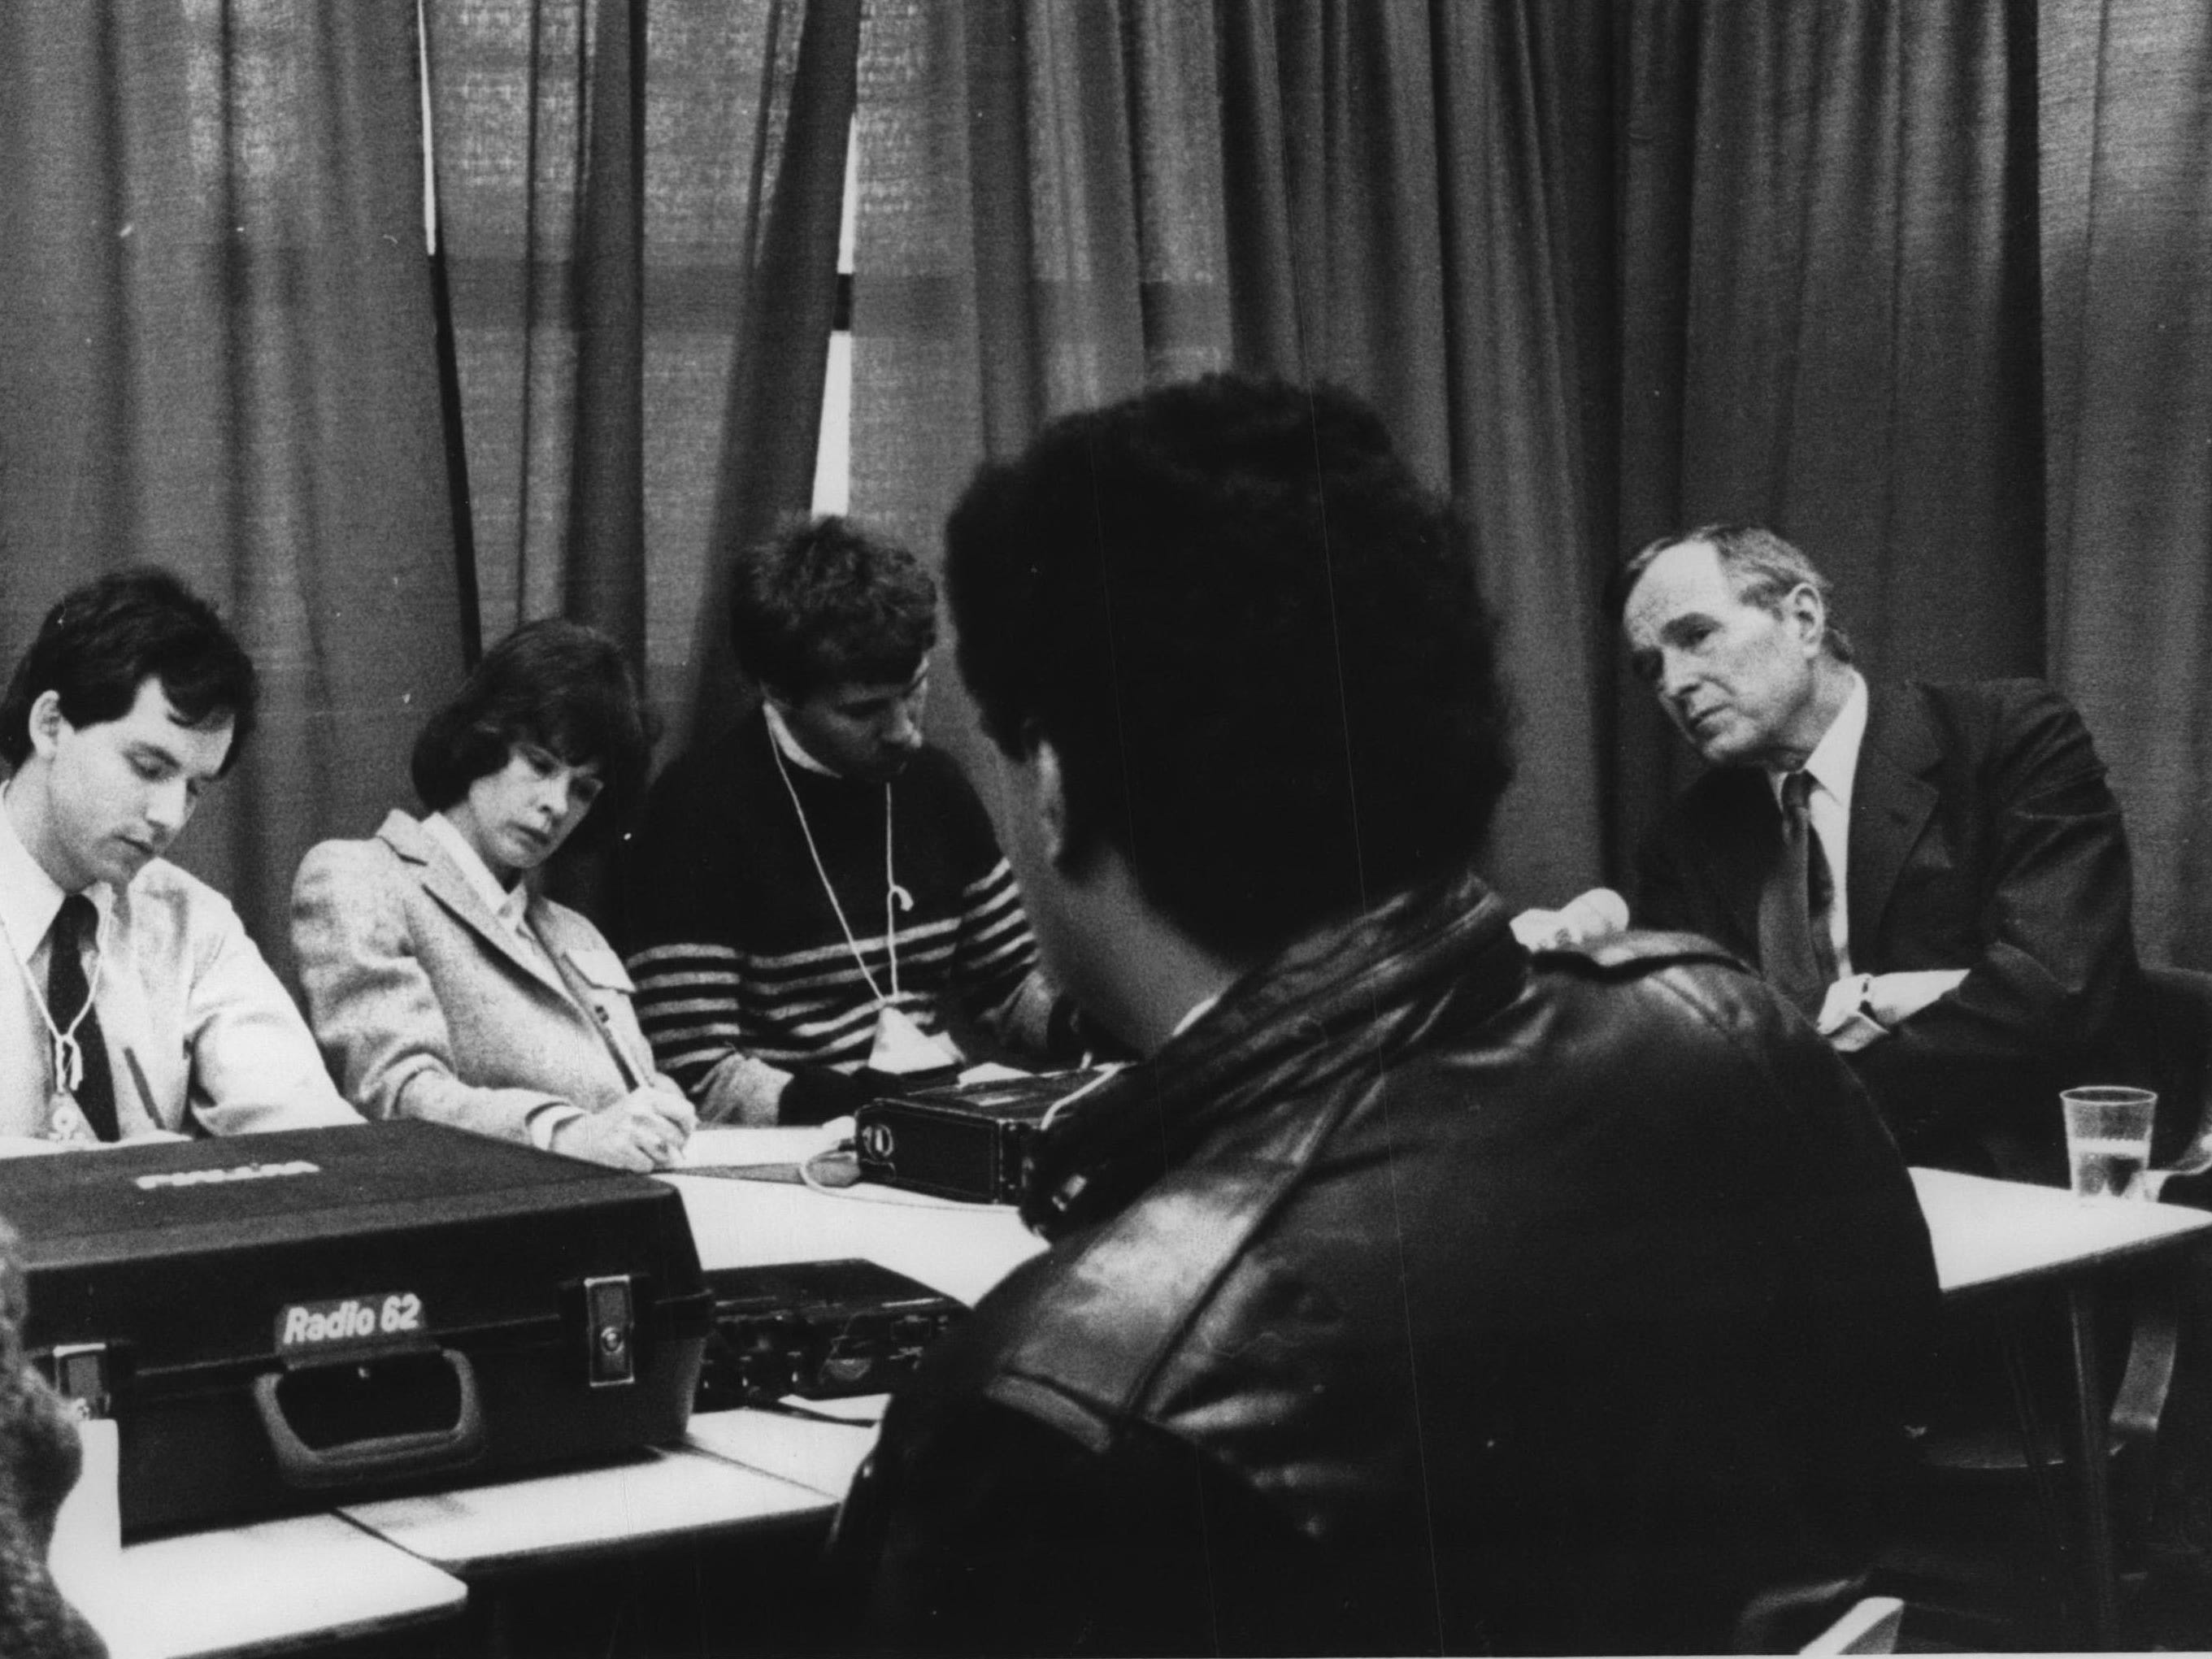 George Bush has a round table meeting at Marquette University High School in 1988.